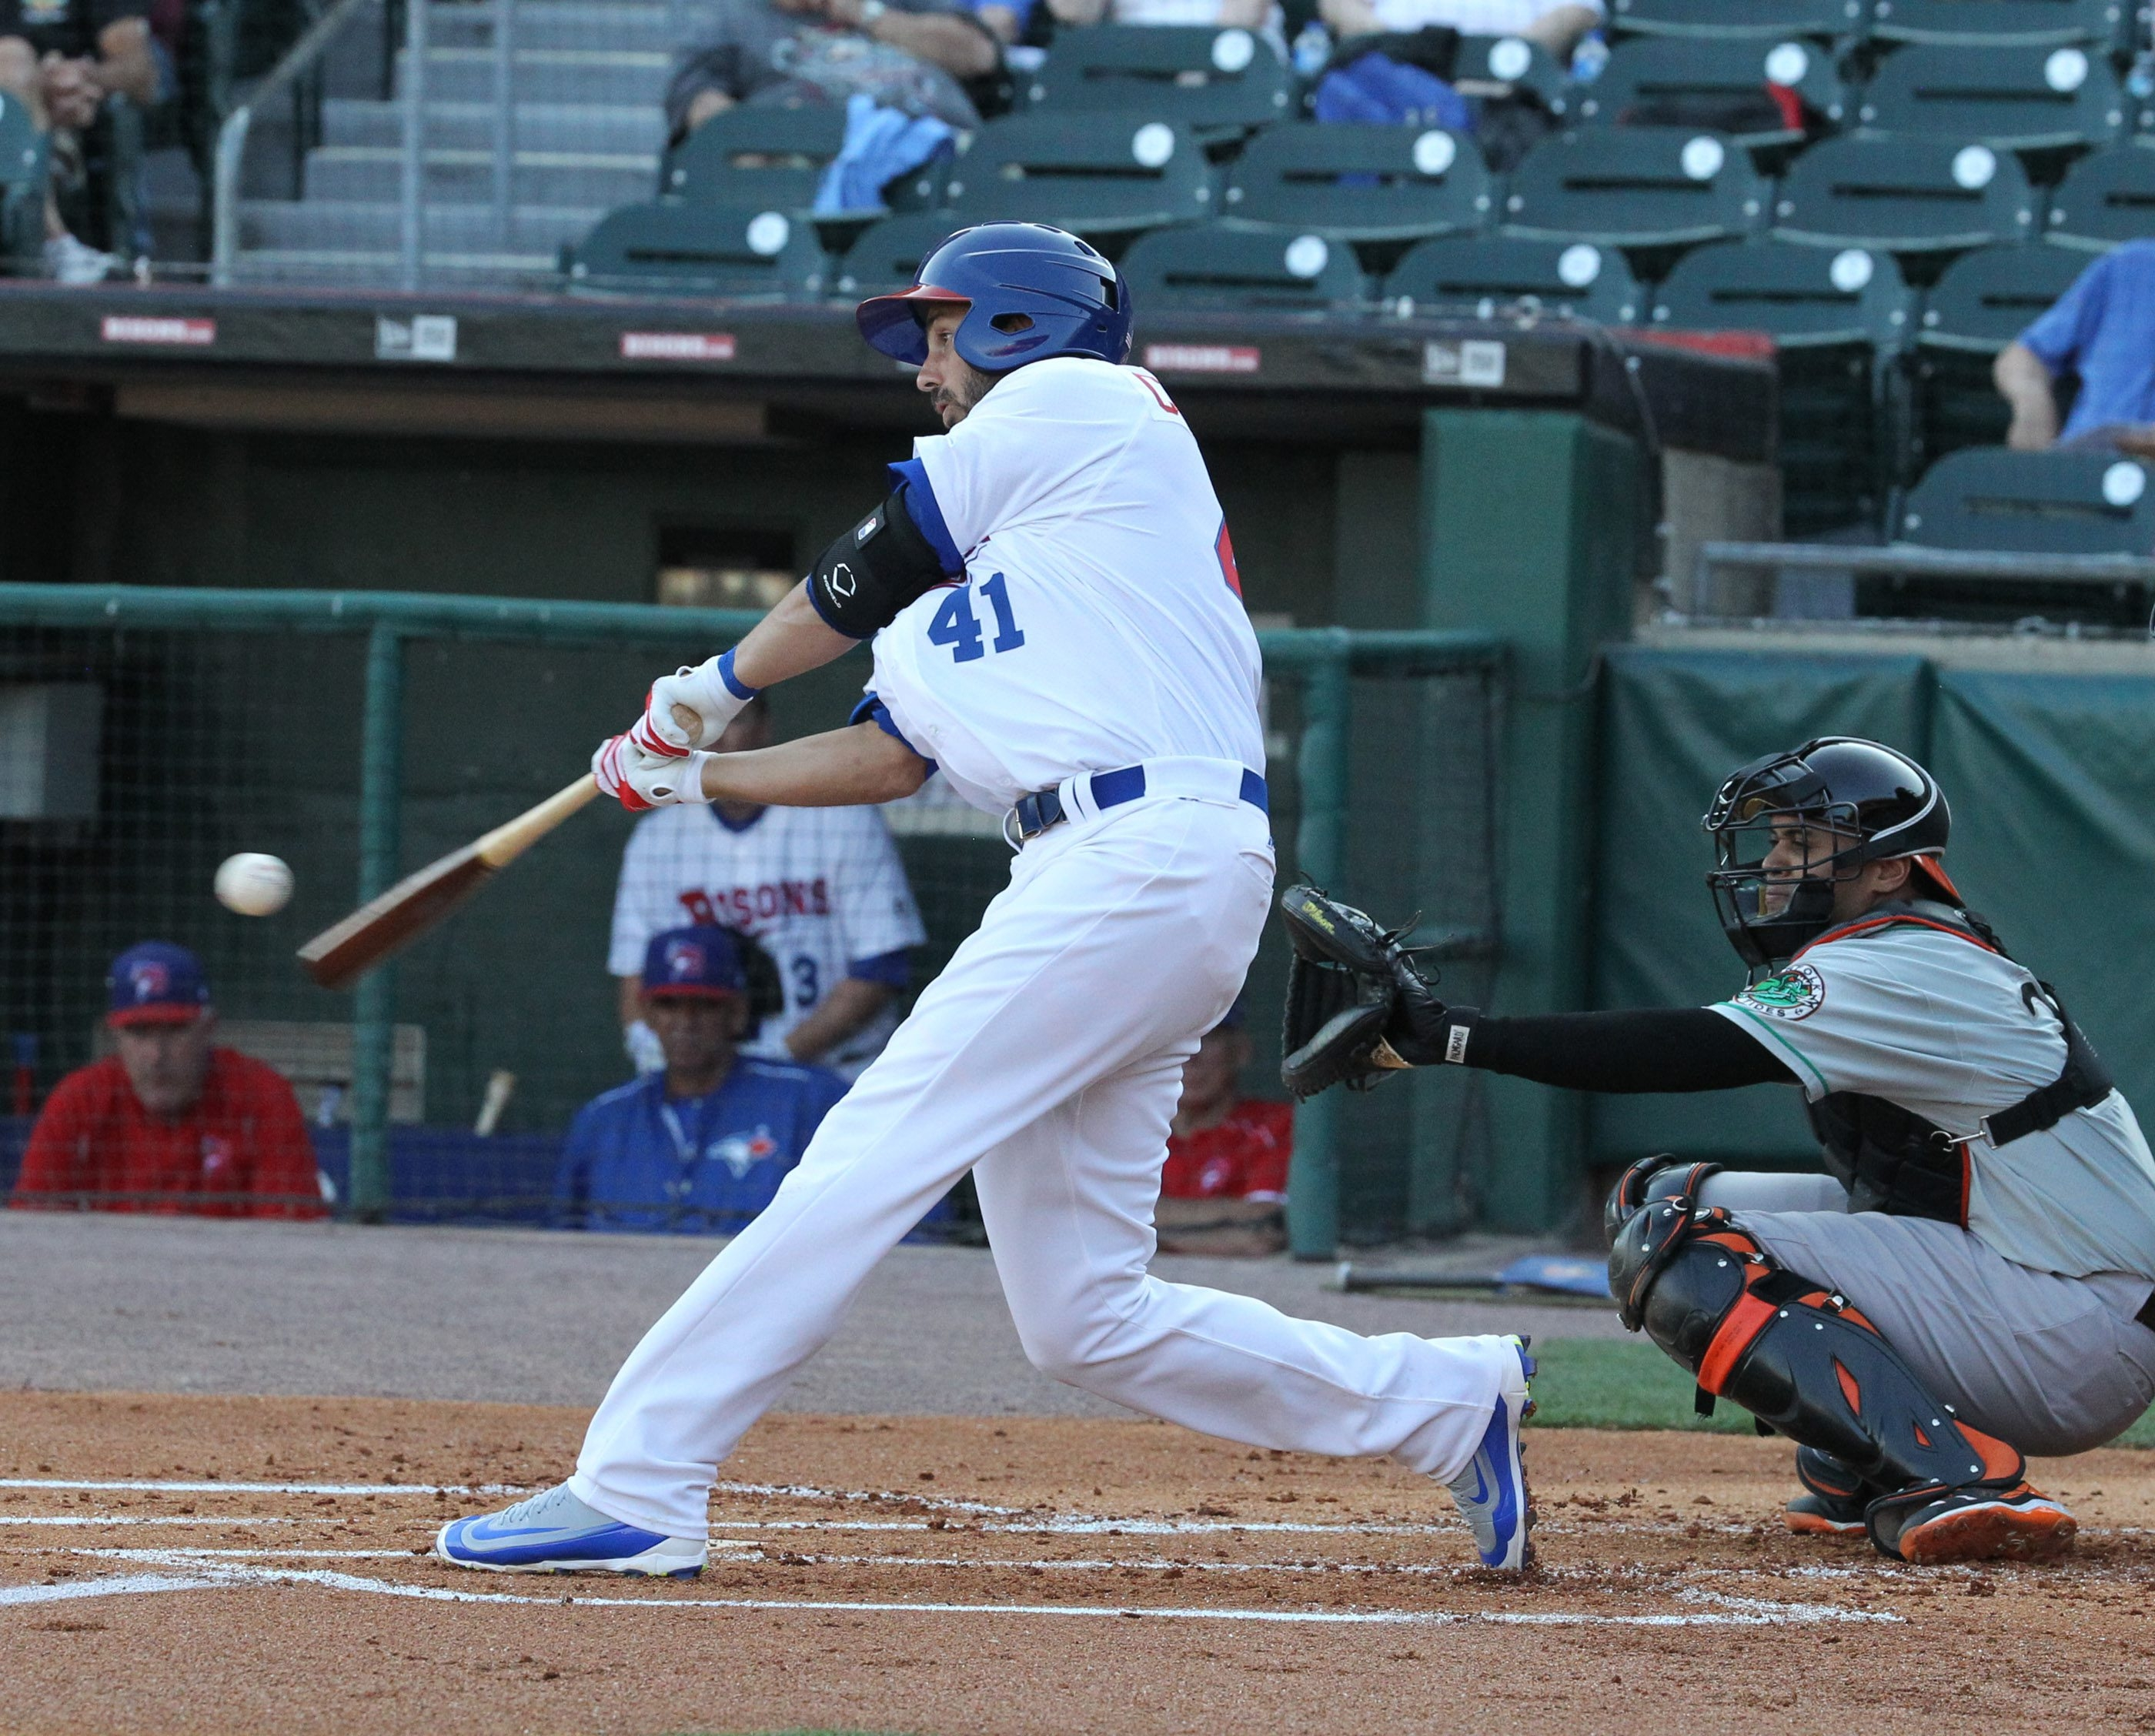 Chris Colabello, who started at first base for the Bisons on Monday, blasts a first-inning solo home run to left-center field.